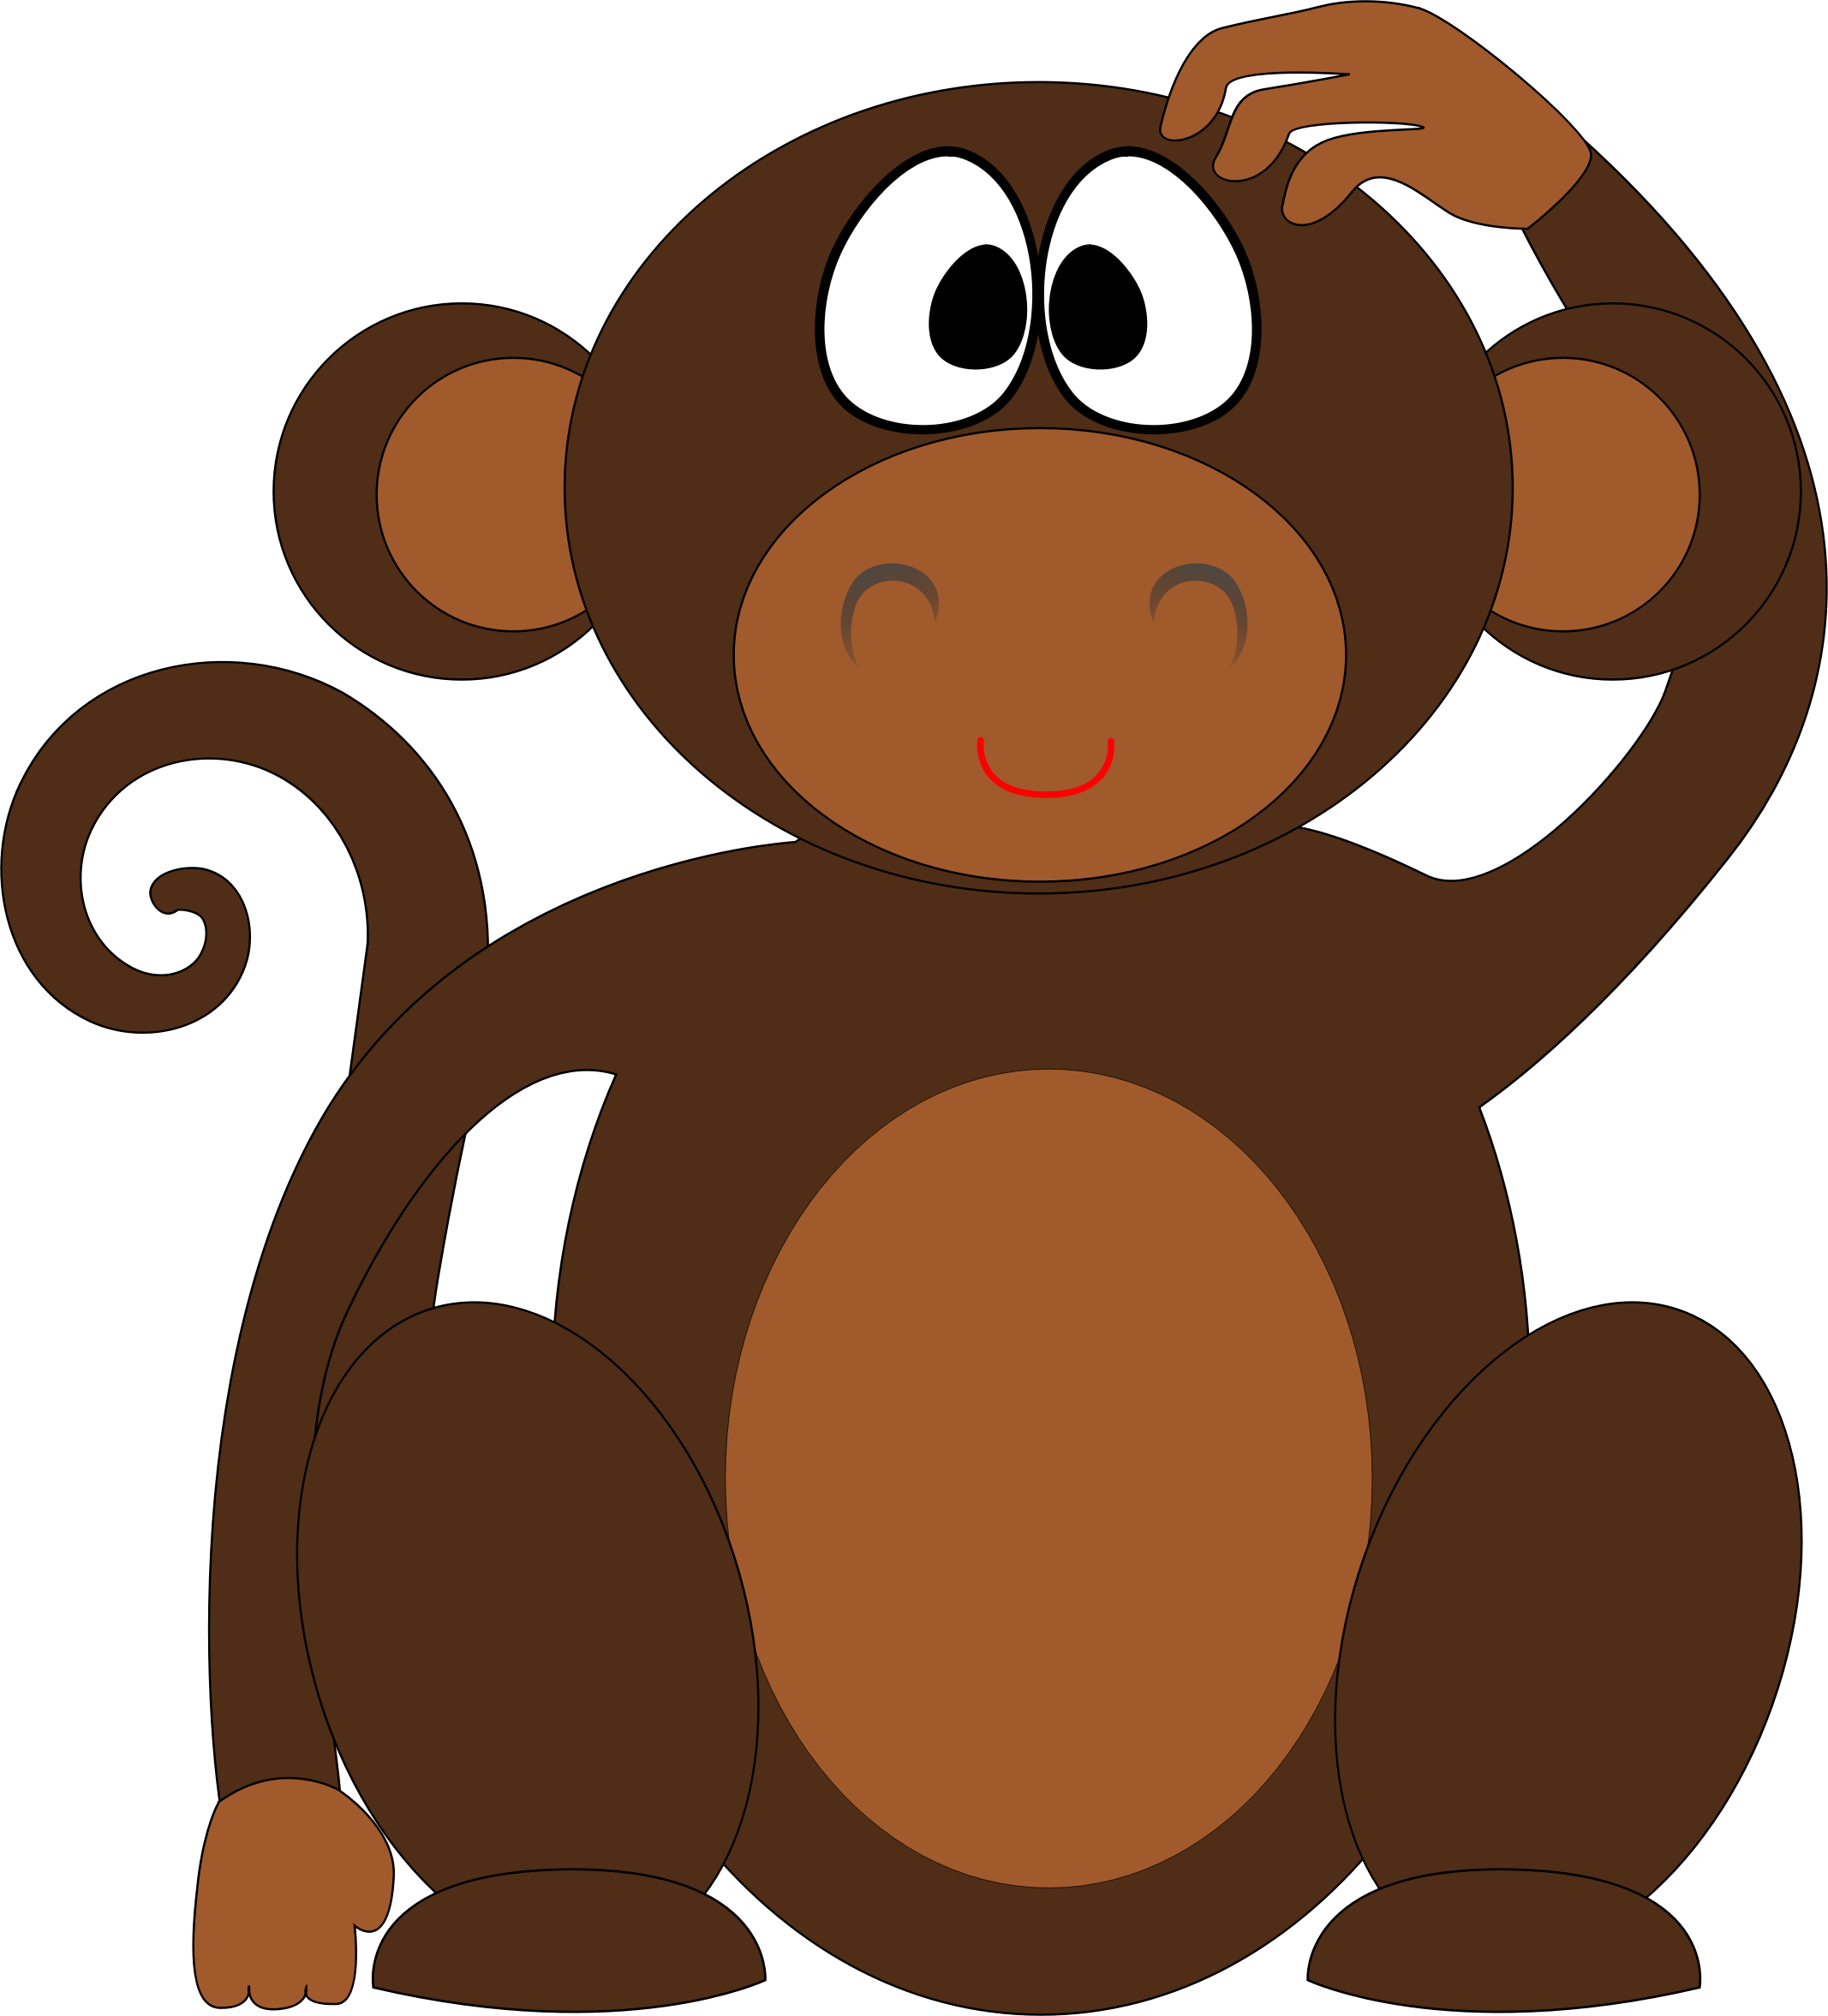 jamaican proverbs to. Monkey clipart simple